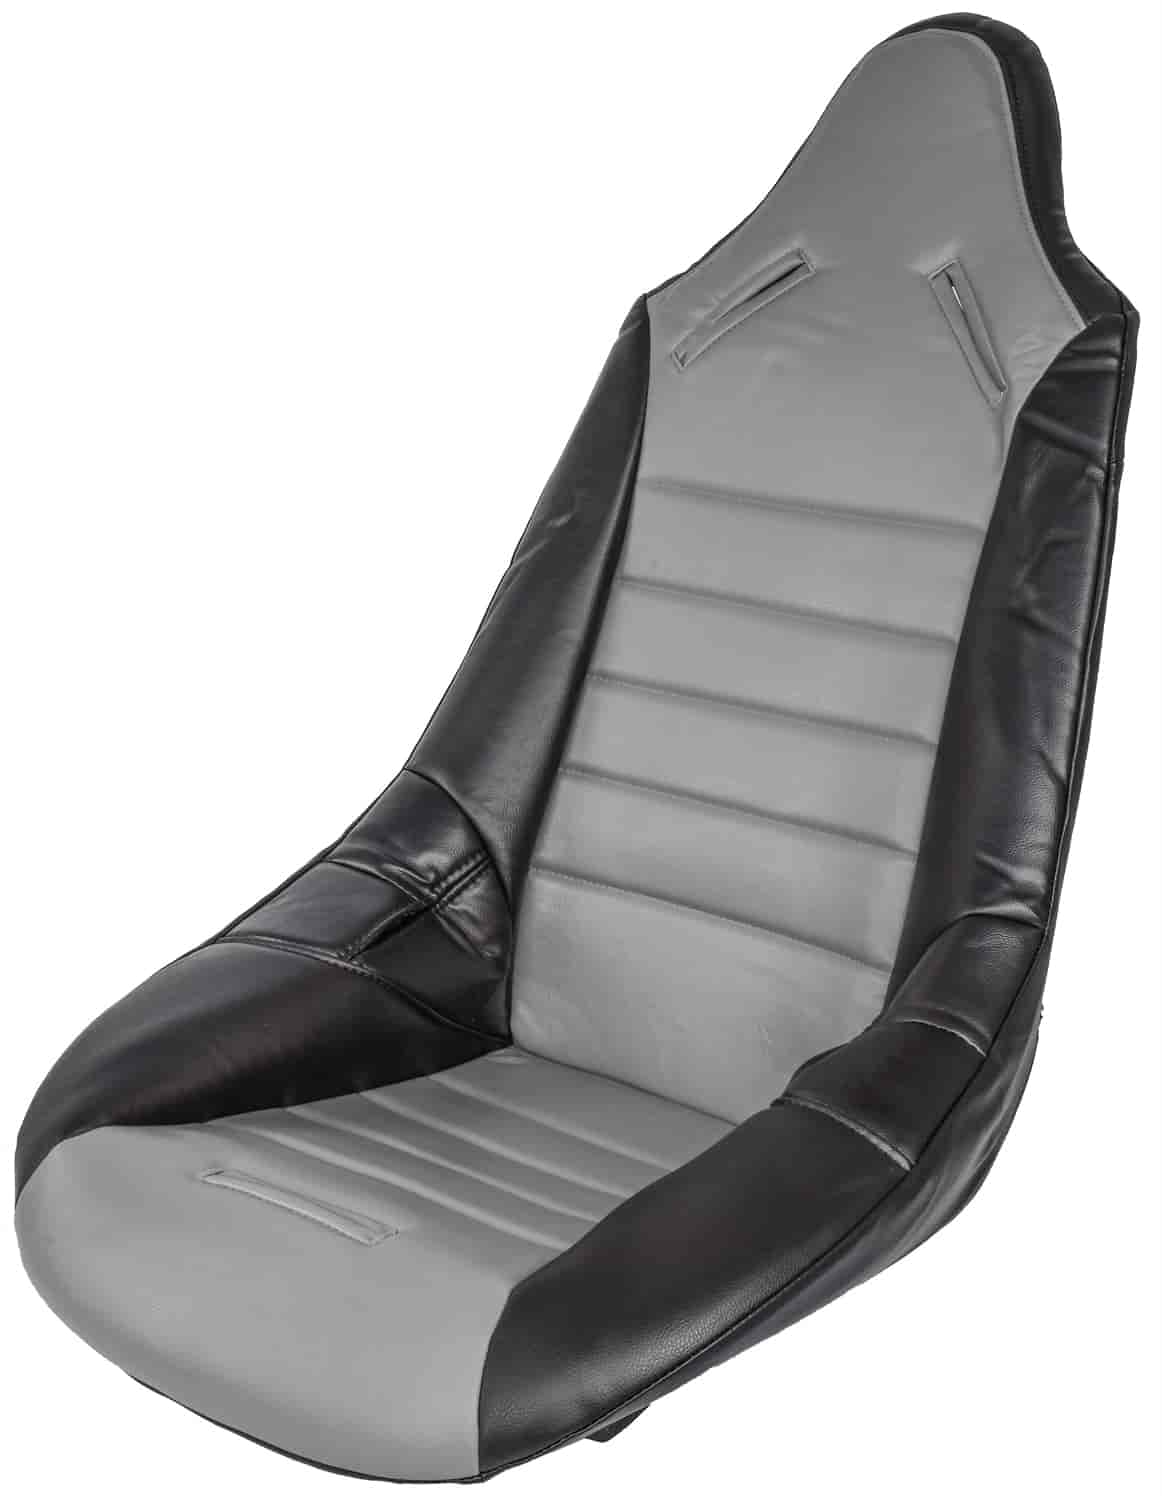 JEGS Performance Products 70286 - JEGS Pro High Back II Race Seats and Seat Covers